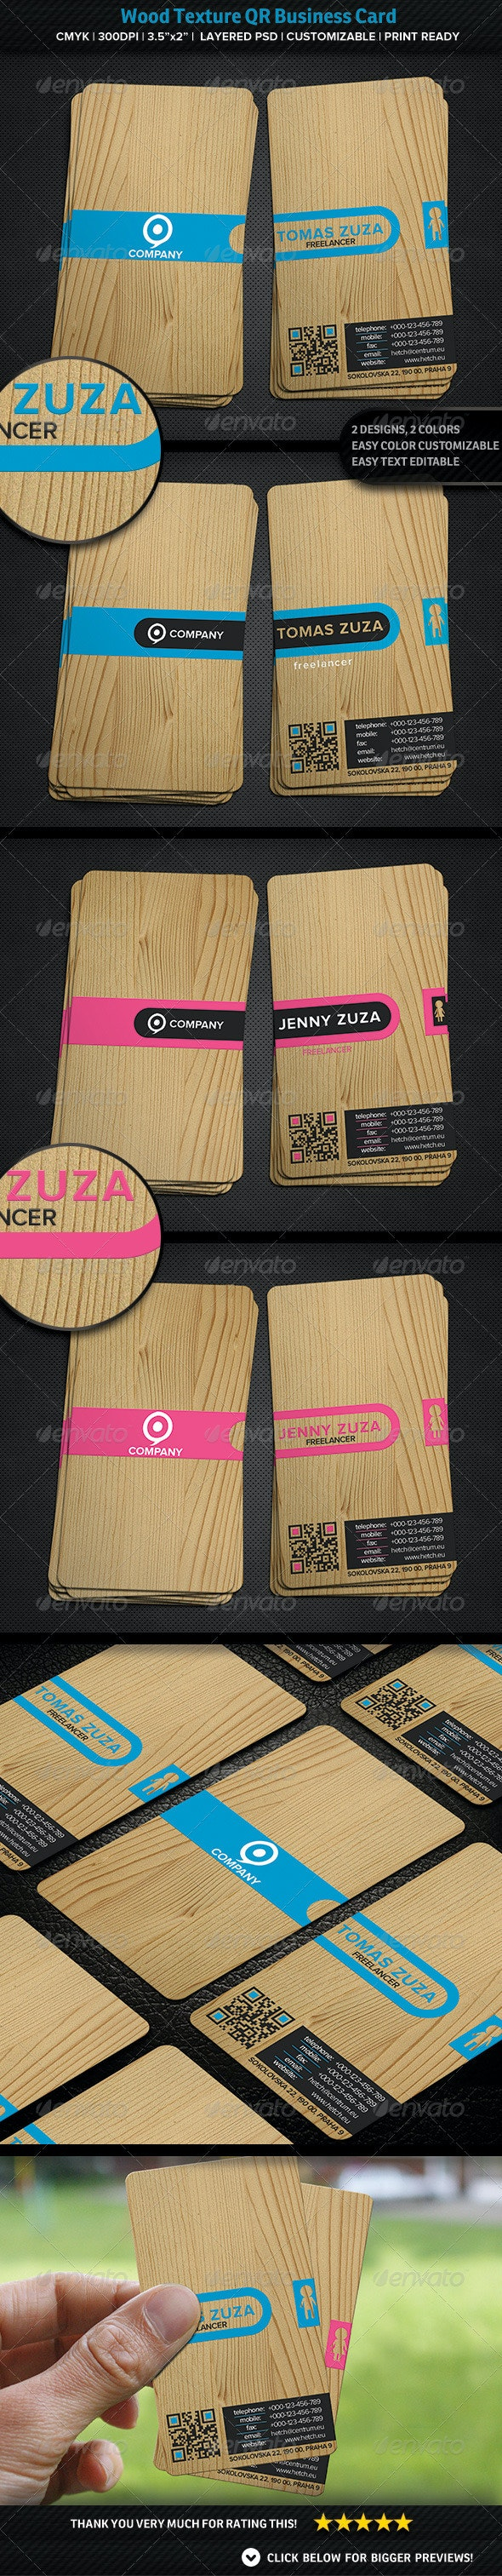 Wood Texture QR Business Card - Creative Business Cards